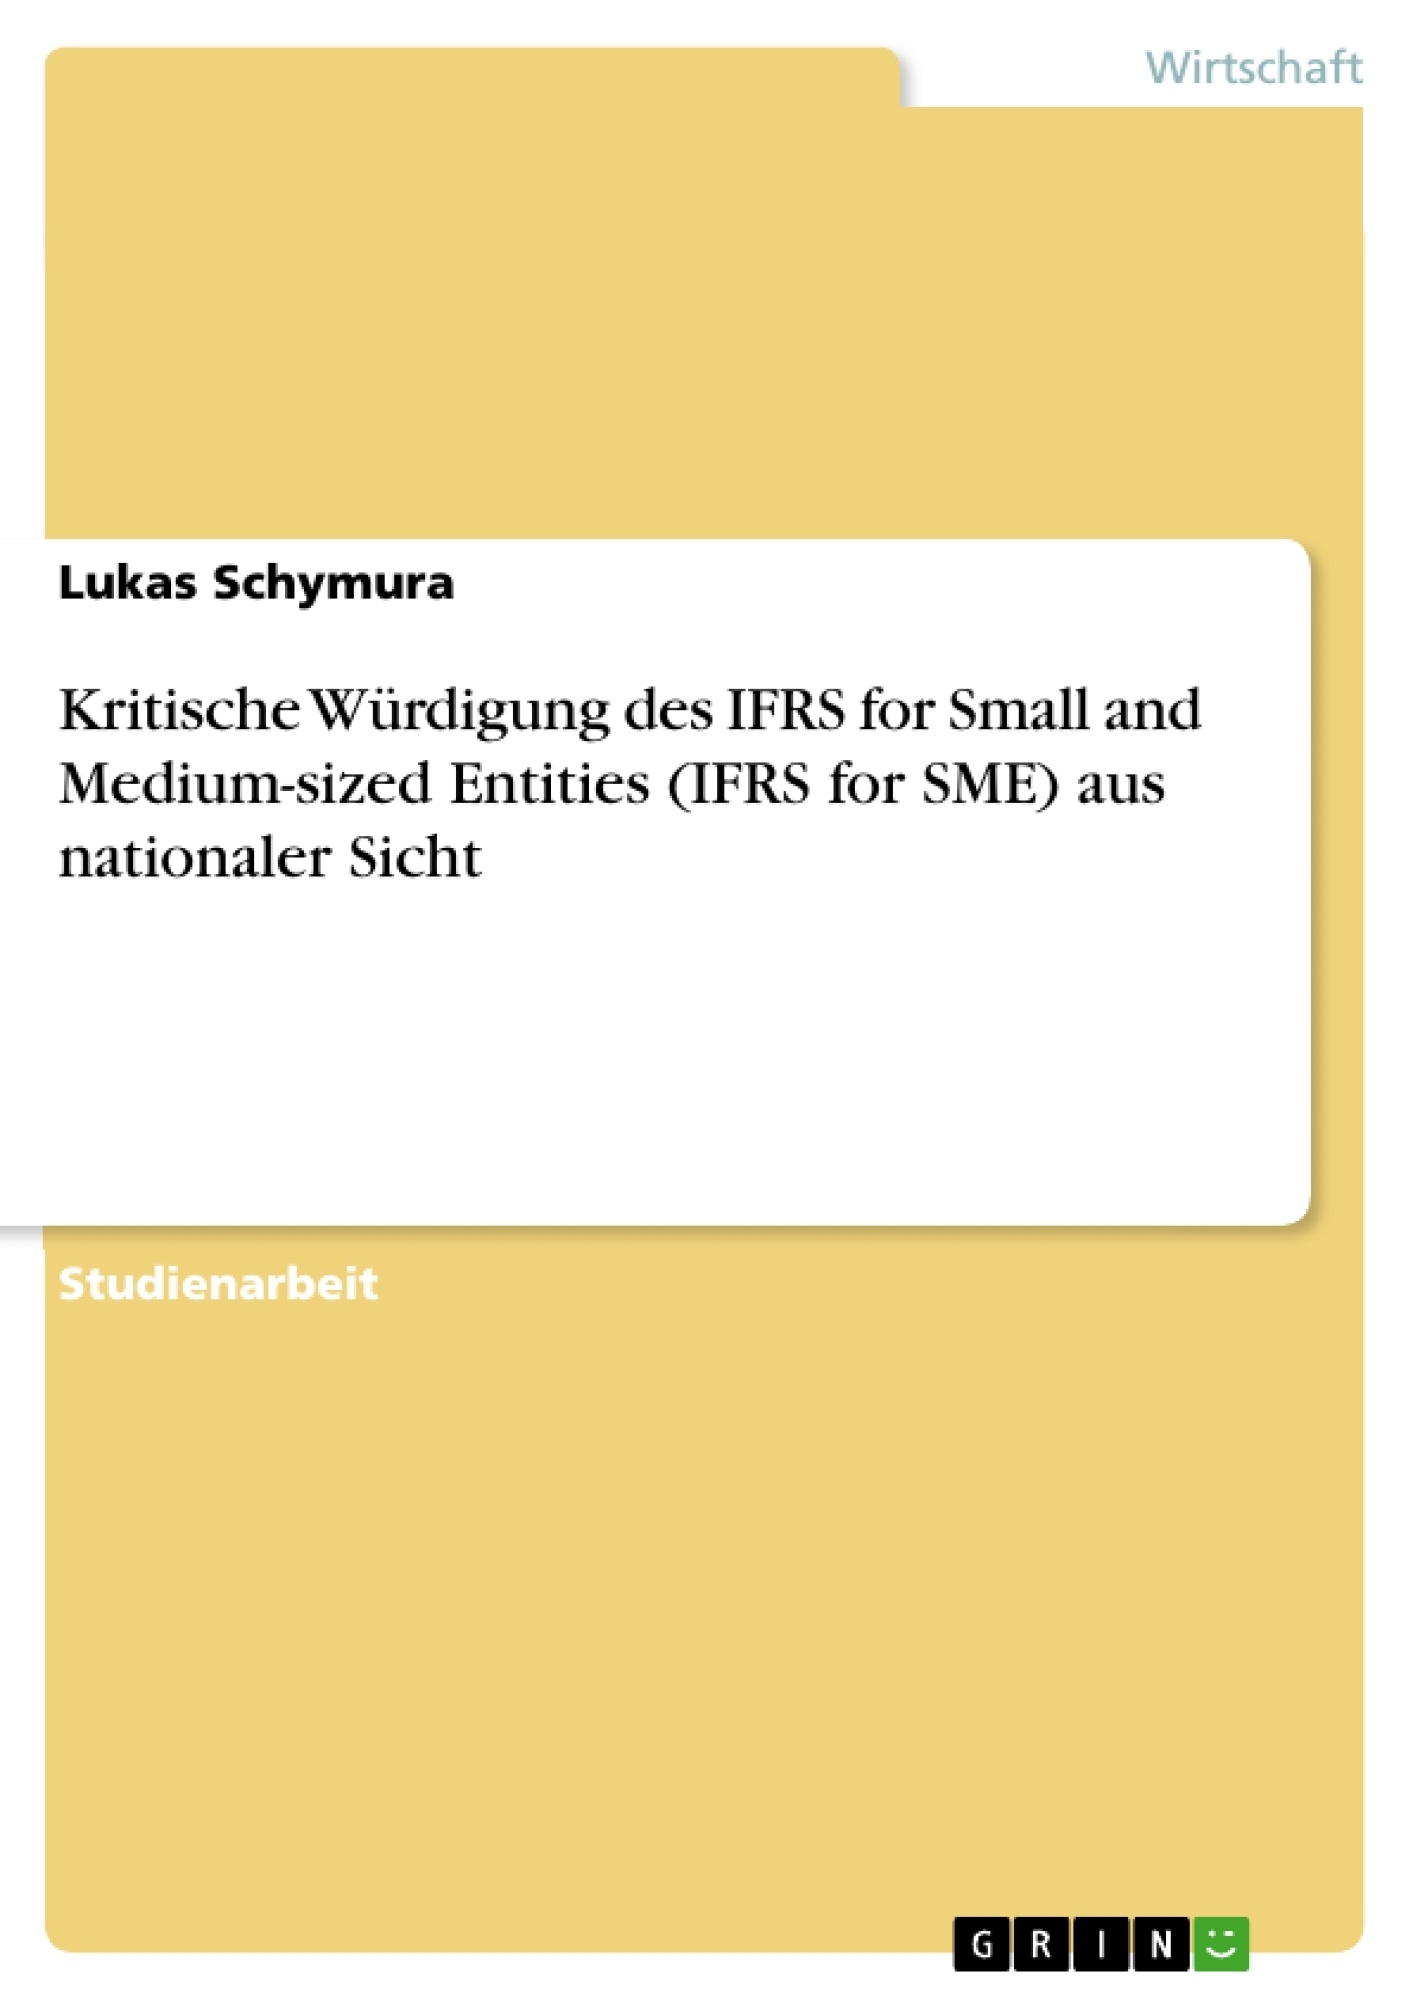 Titel: Kritische Würdigung des IFRS for Small and Medium-sized Entities (IFRS for SME) aus nationaler Sicht